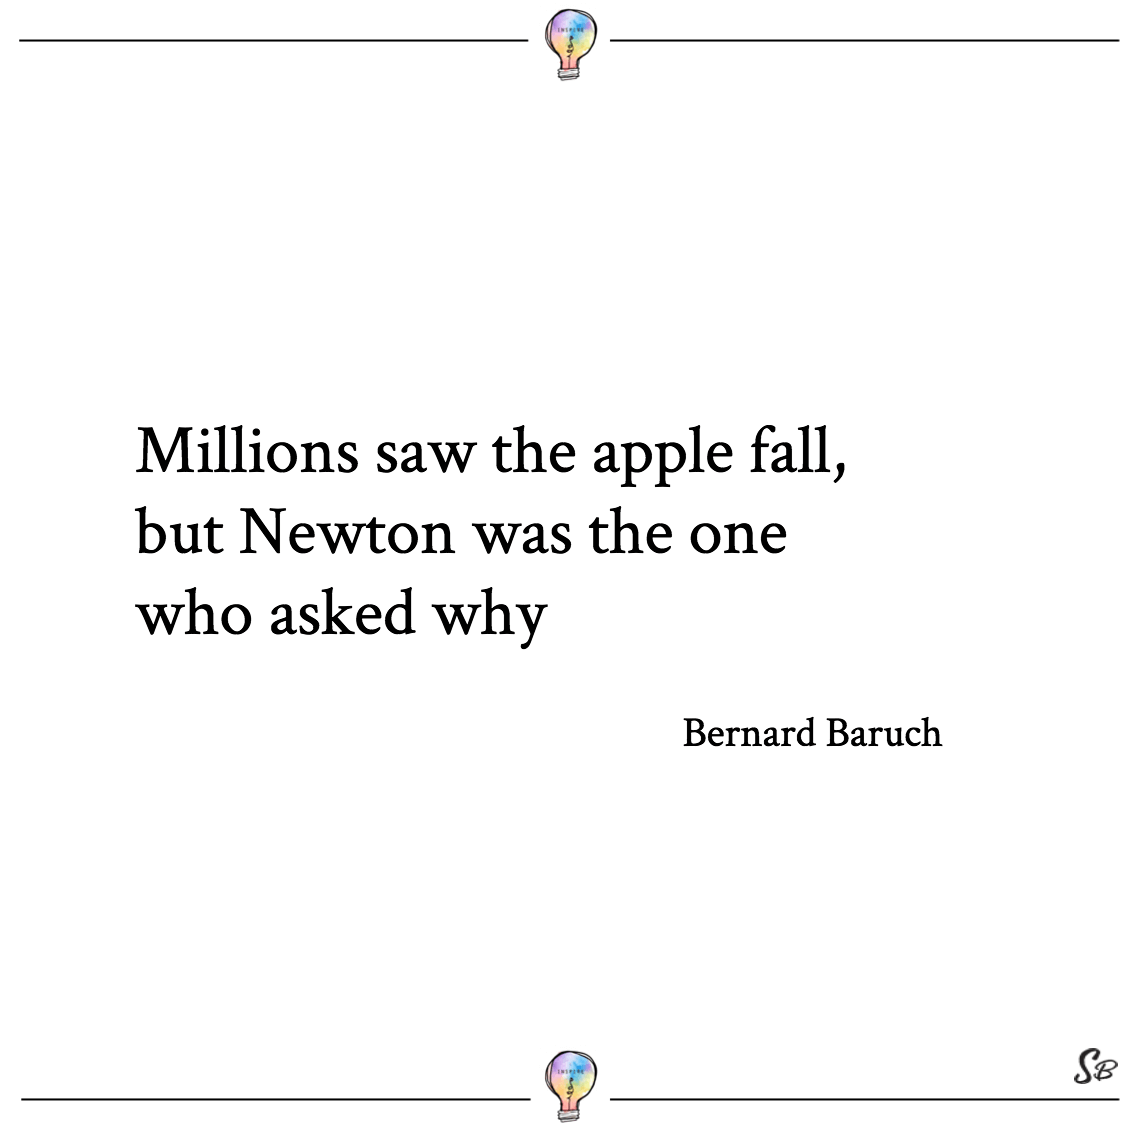 Millions saw the apple fall, but newton was the one who asked why bernard baruch